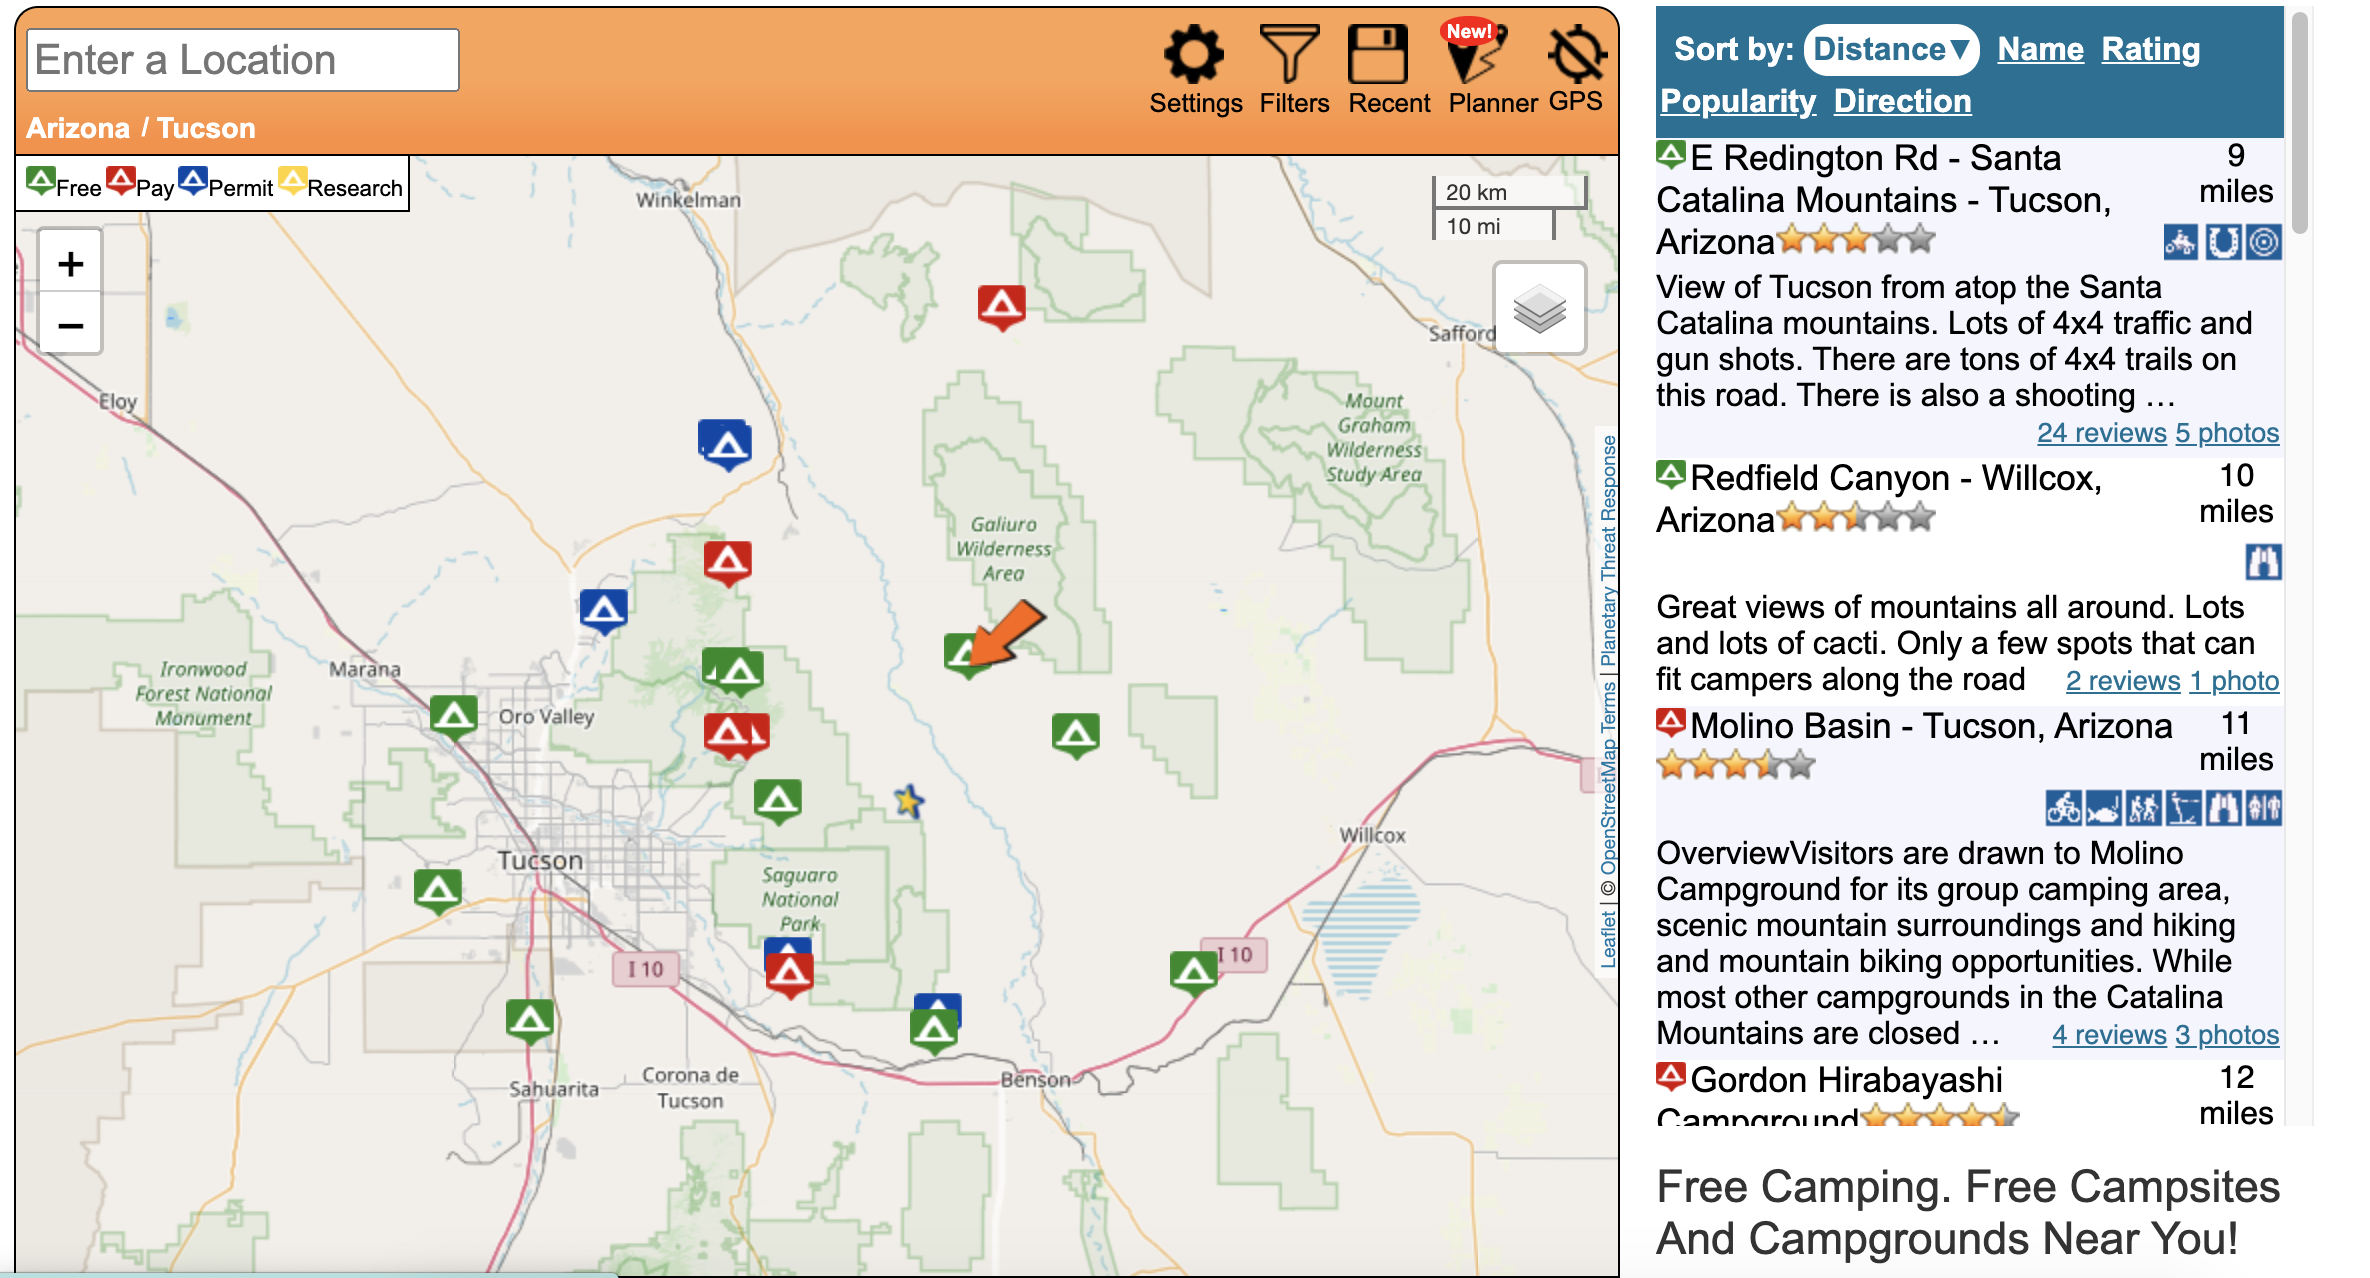 map with little icons of campsites and reviews on the right side